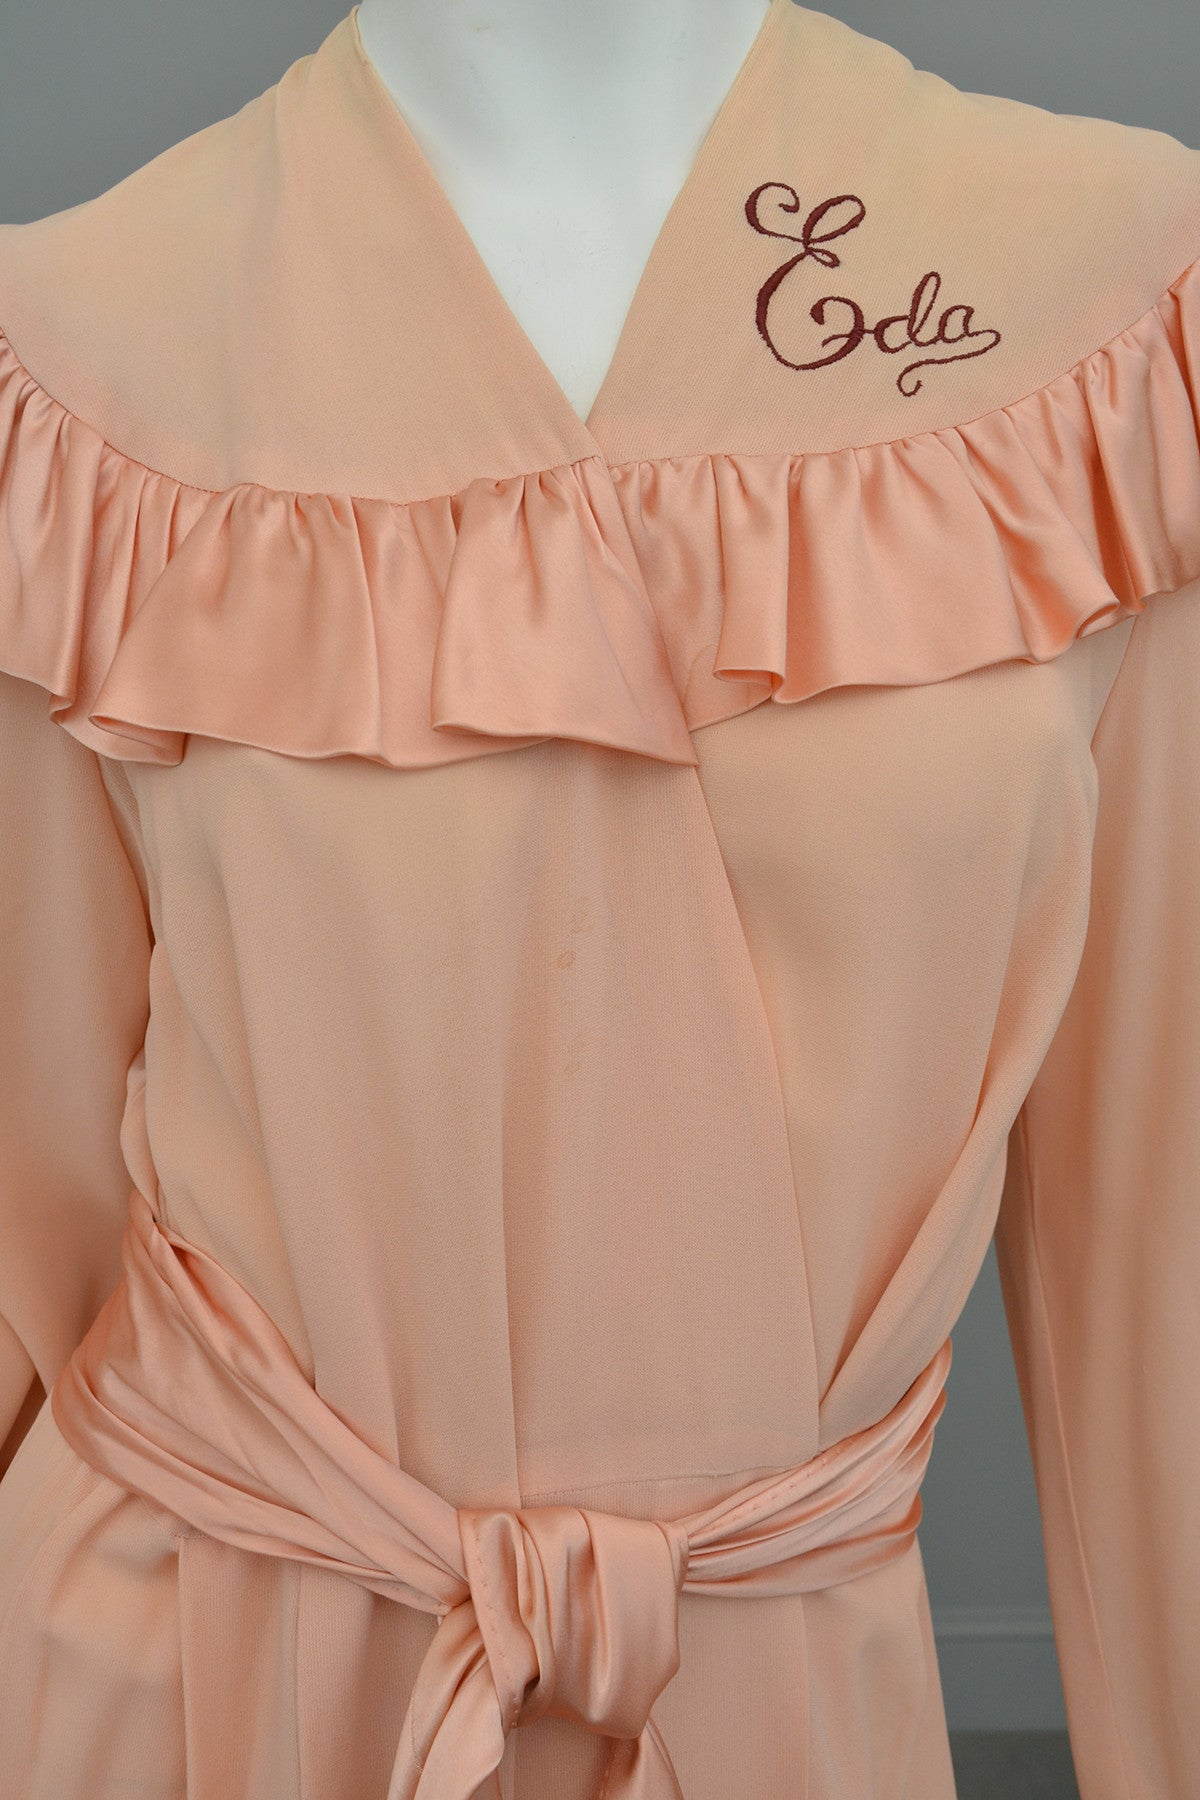 357f709c19 1930s Peach Crepe Satin Rubble Glamorous Robe - Call me Eda ...